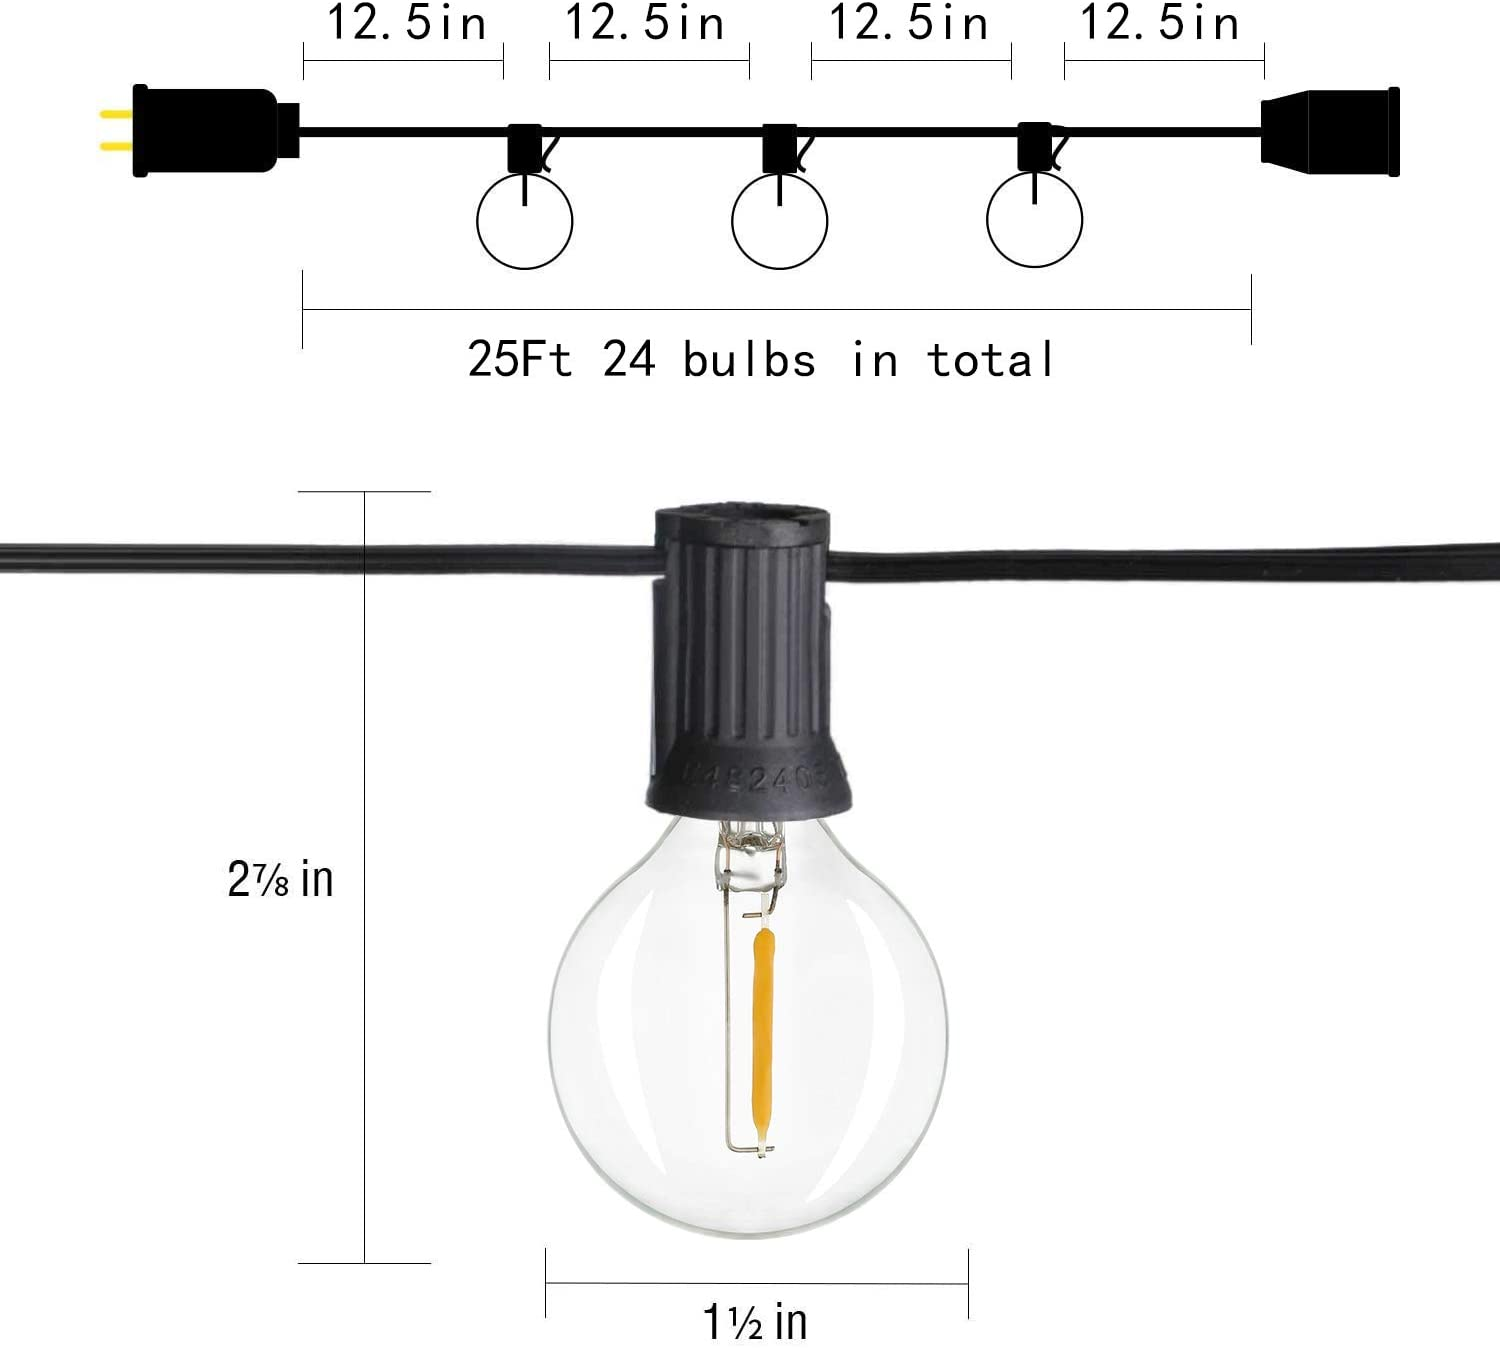 keymit G40 25Ft LED Dimmable Outdoor String Lights Edison Vintage Warm Glow 1W 2200K Globe Small Clear Glass 23Sockets Cafe Ambience Outside Hanging Lighting for Patio Bistro Garden Party